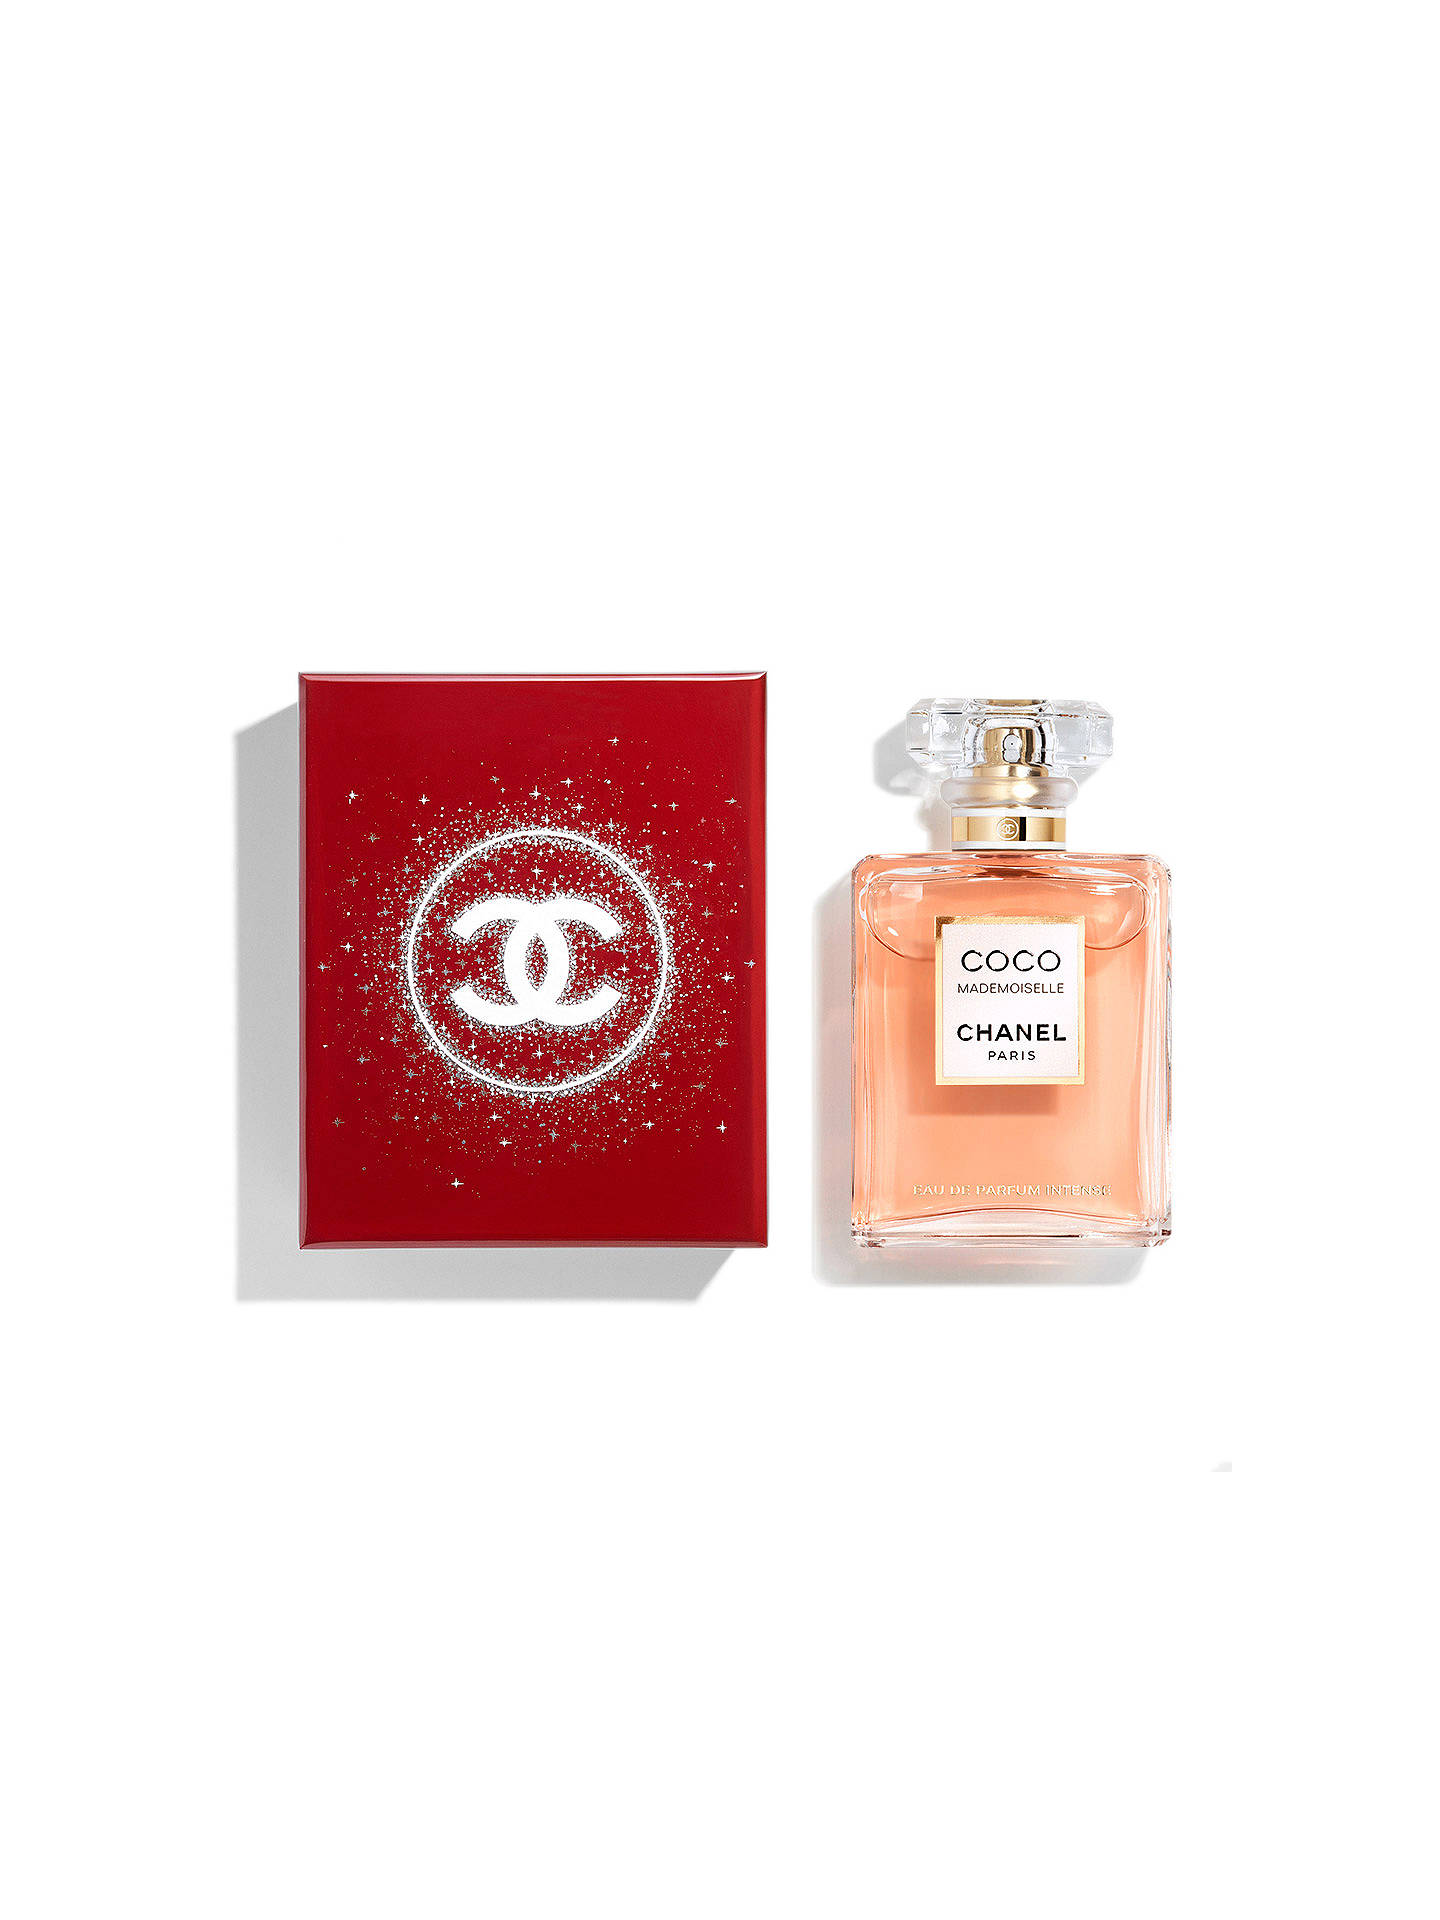 Chanel Coco Mademoiselle Eau De Parfum Intense Spray 100ml With